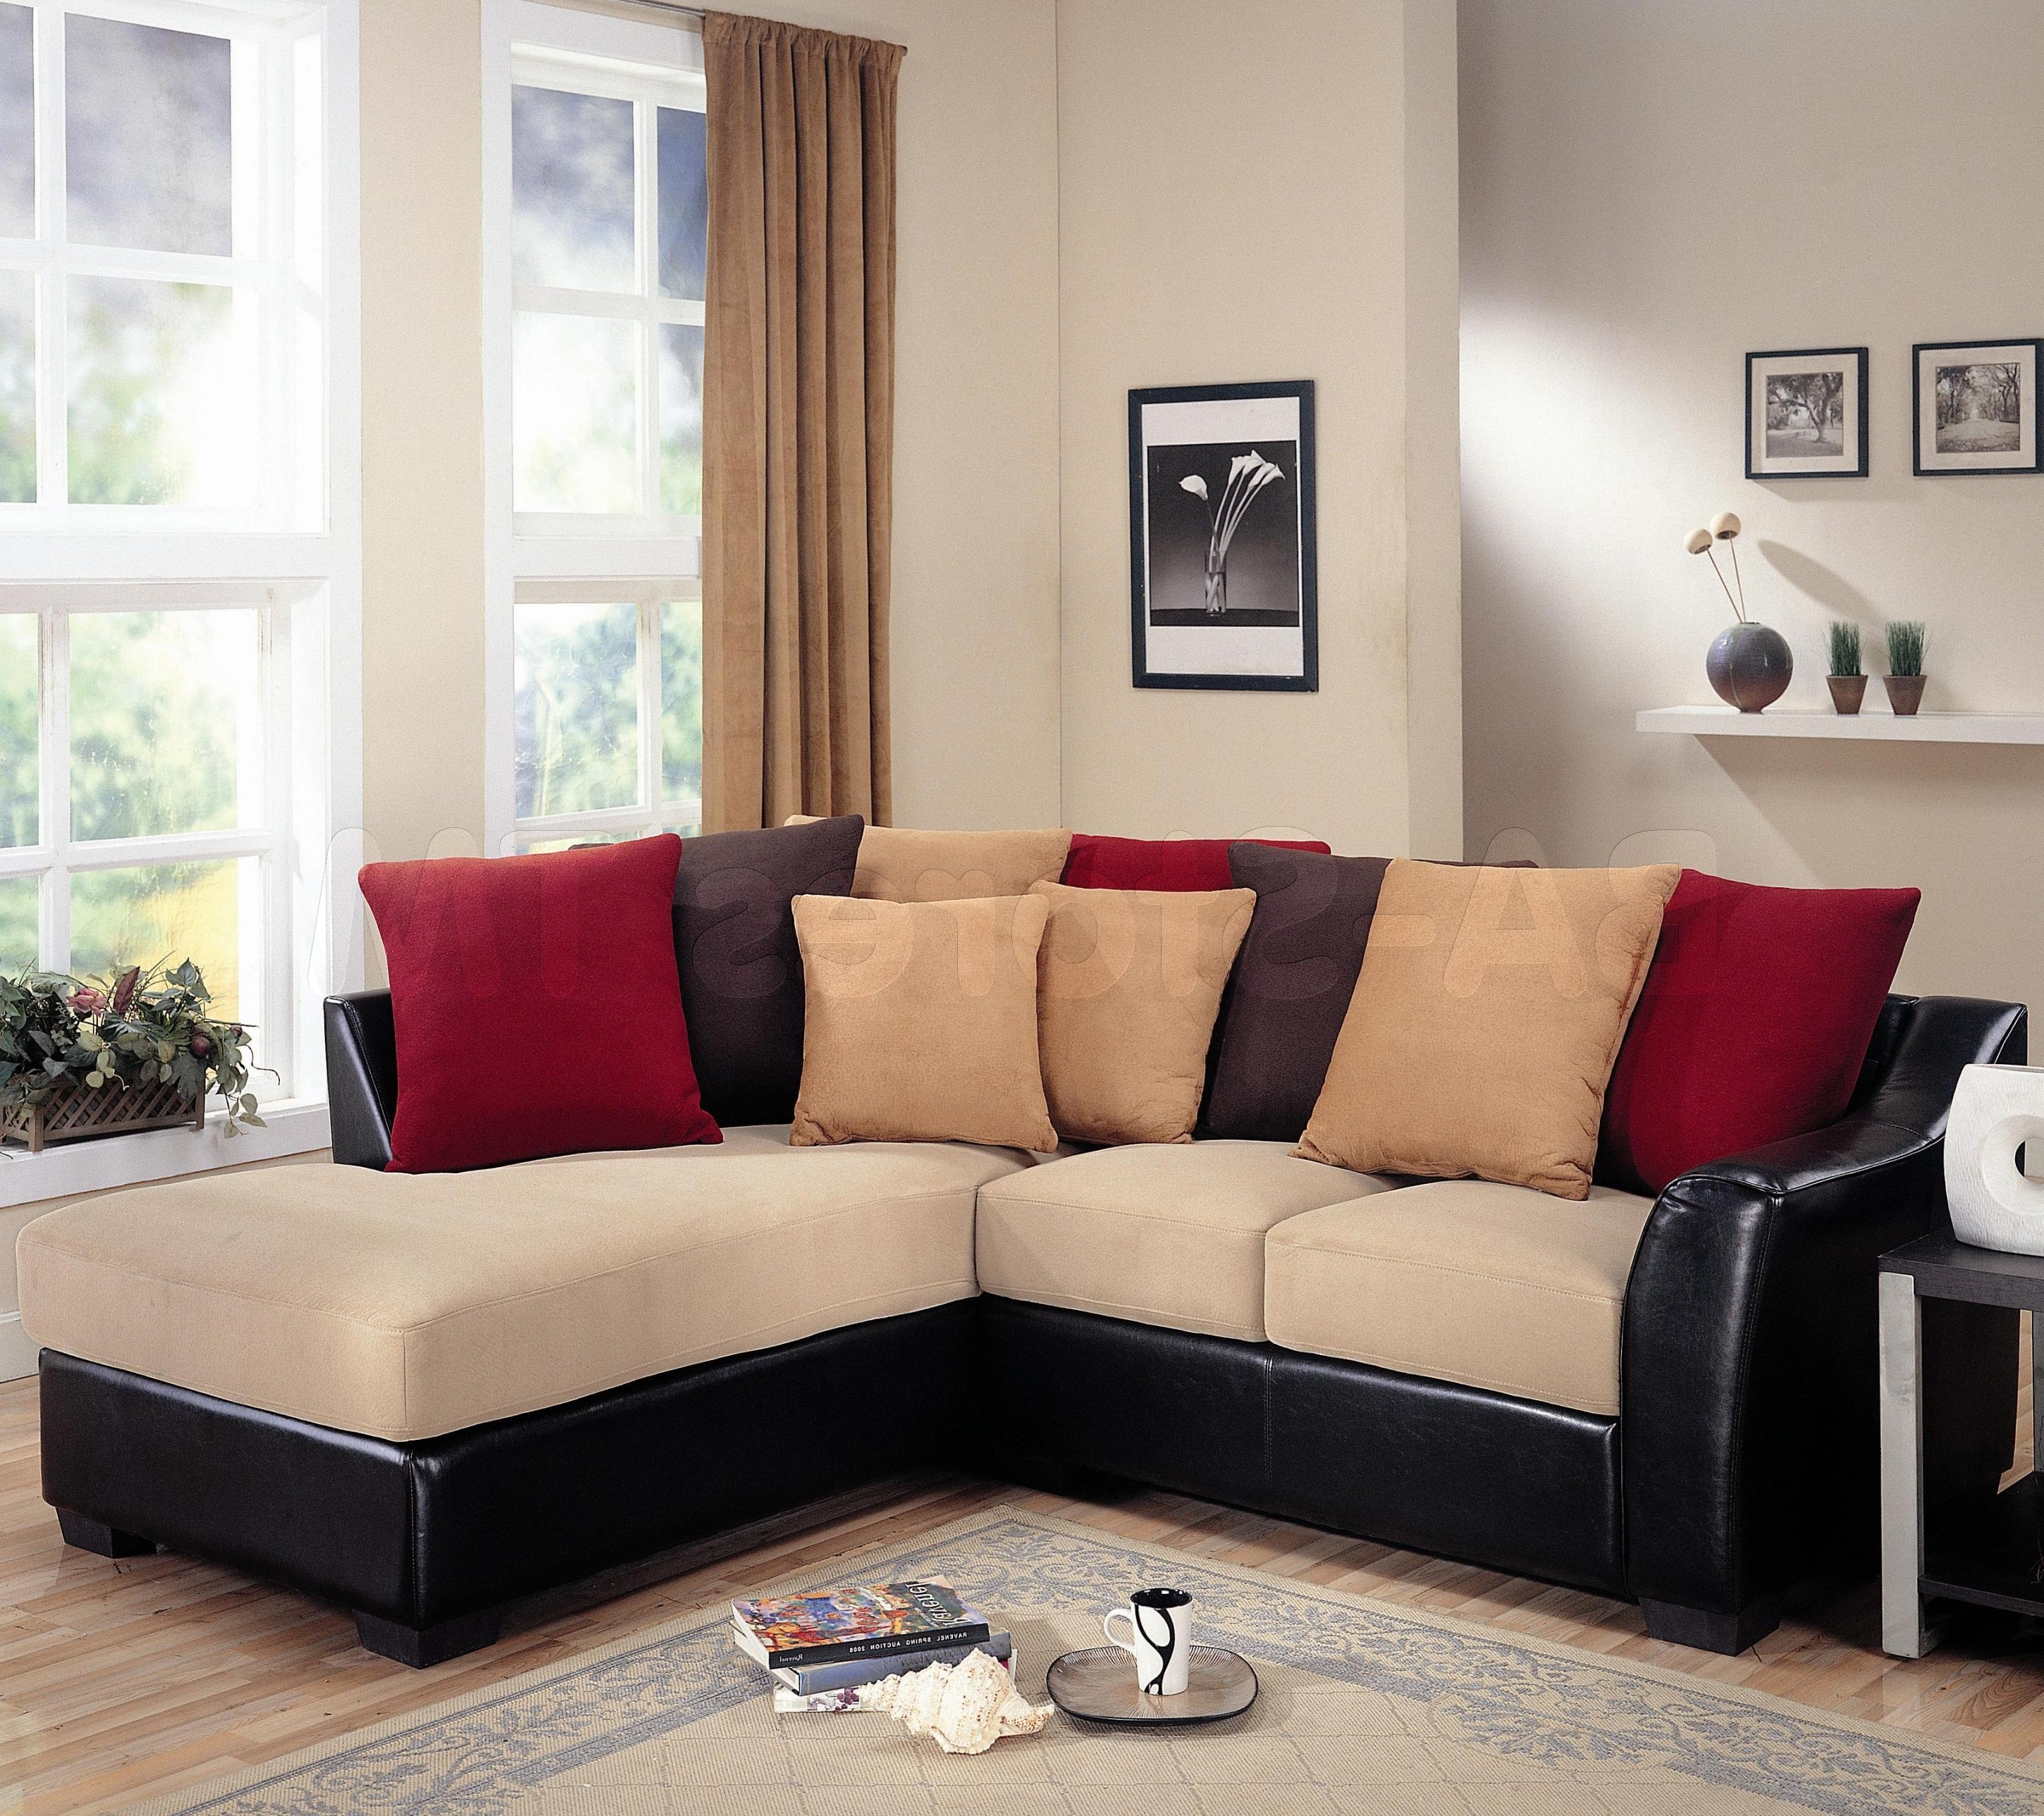 Floor Cushion Sofas For Widely Used Living Room: Cheap Living Room Sets Very Cheap Living Room (View 18 of 20)